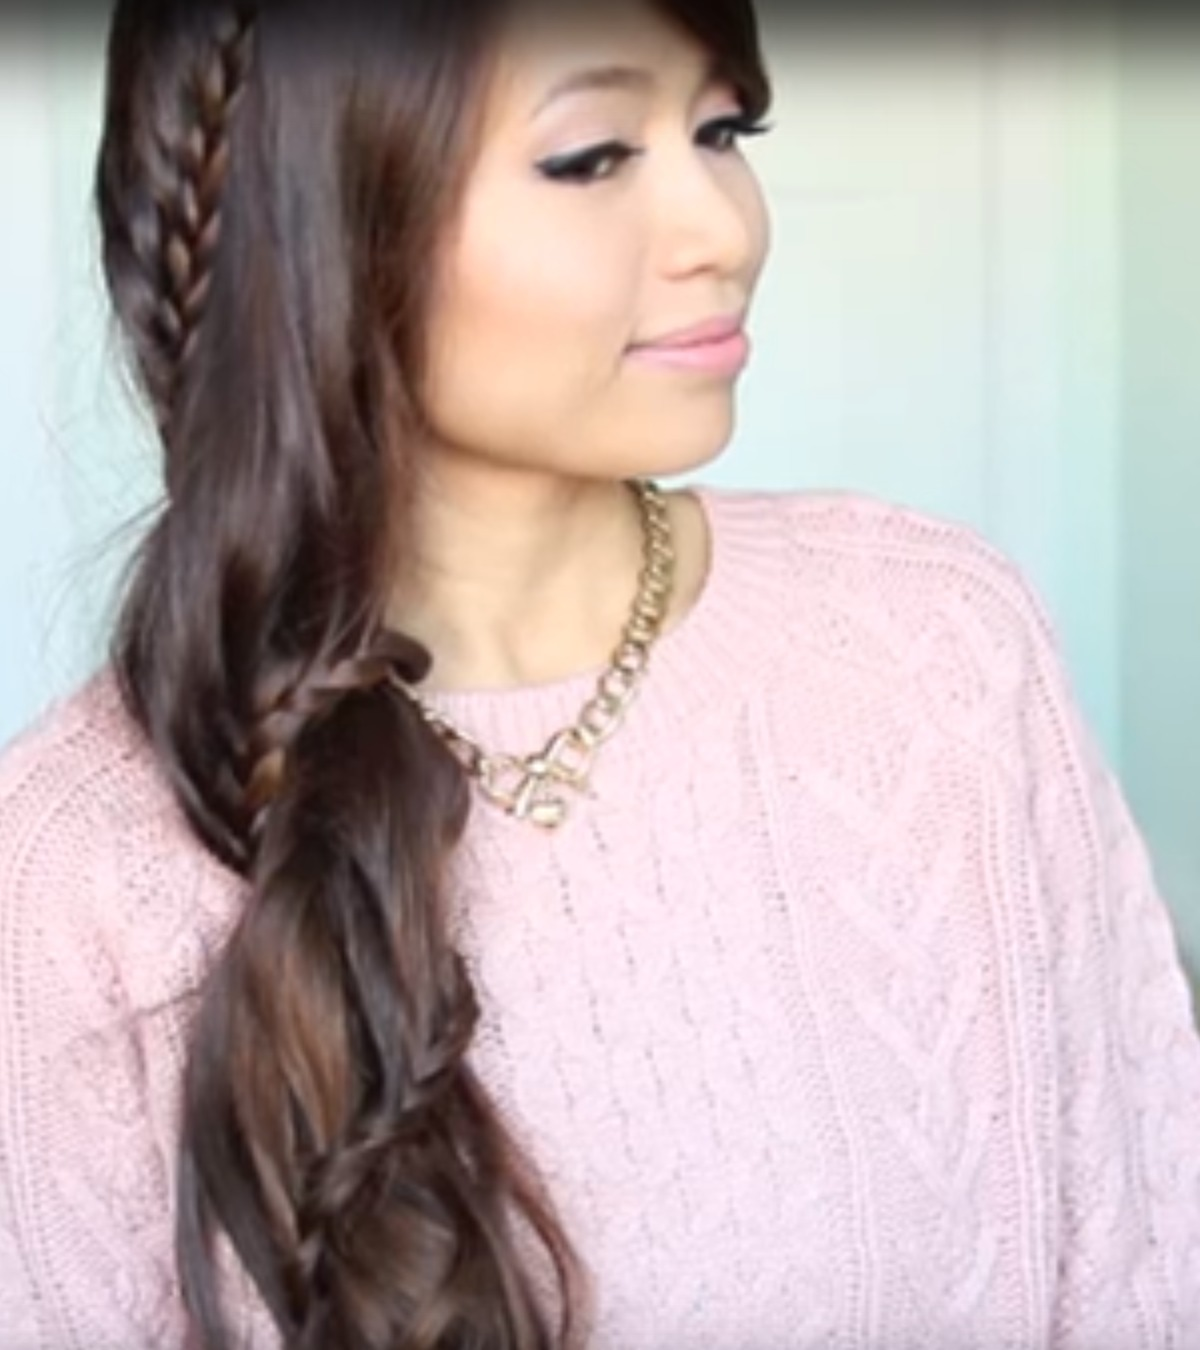 75 easy braided hairstyles - cool braid how to's & ideas